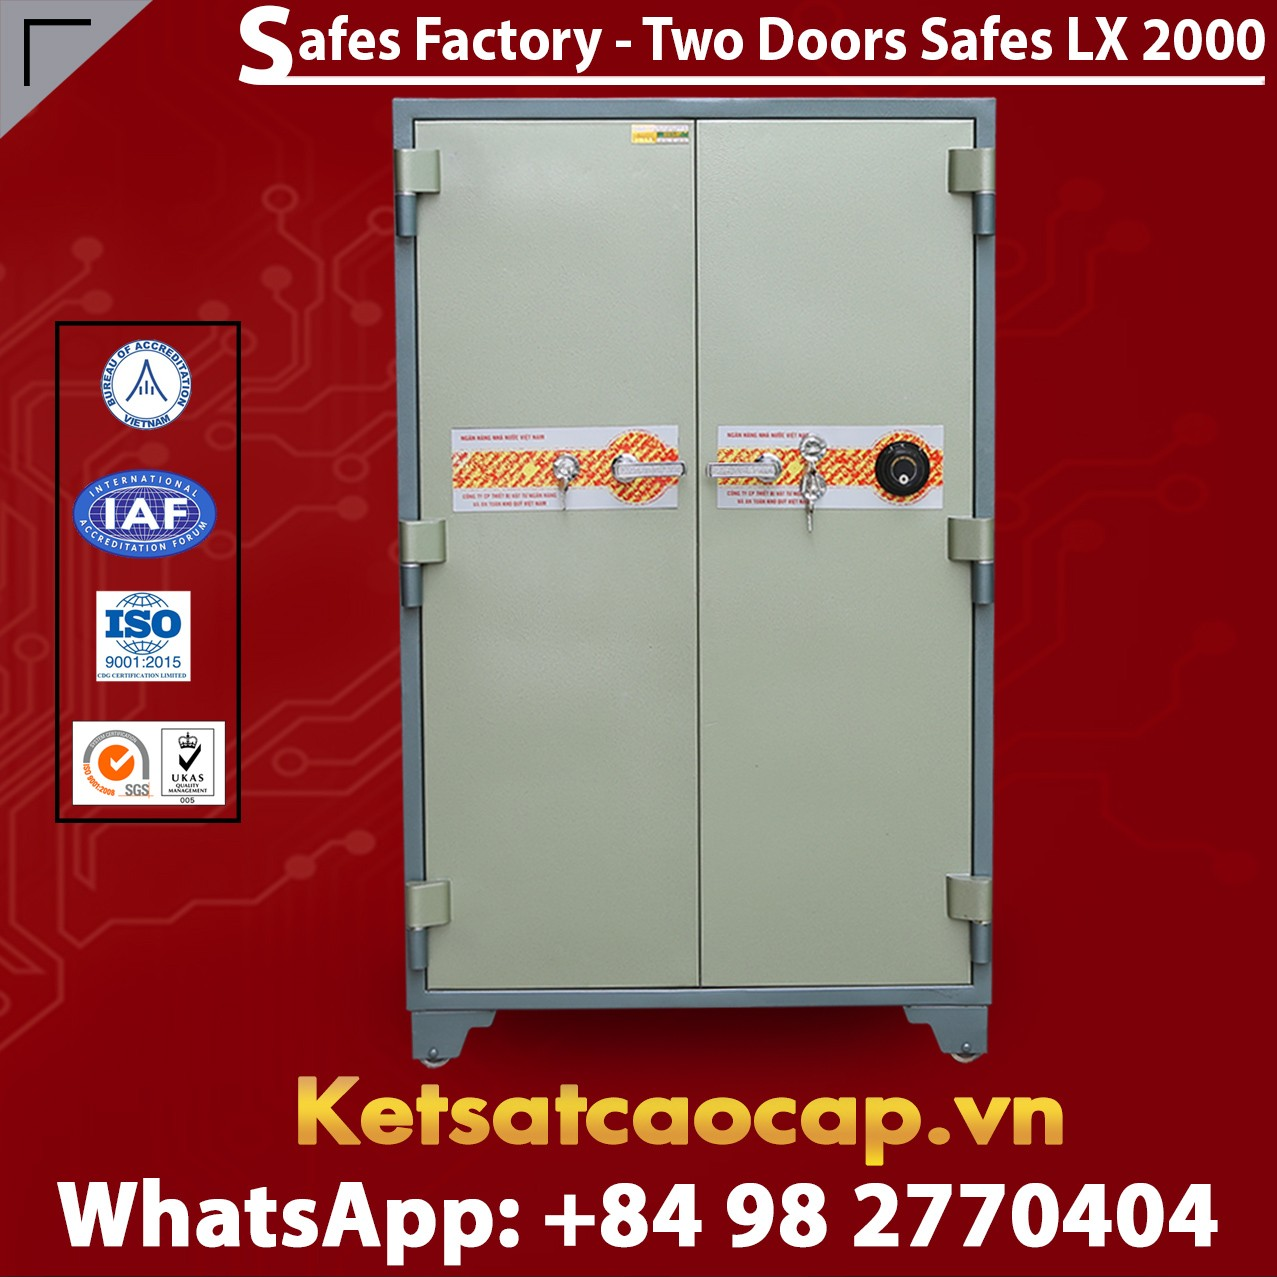 Bank Safes LX2000 DK Two Doors Innovative Mechanical Fireproof Safes